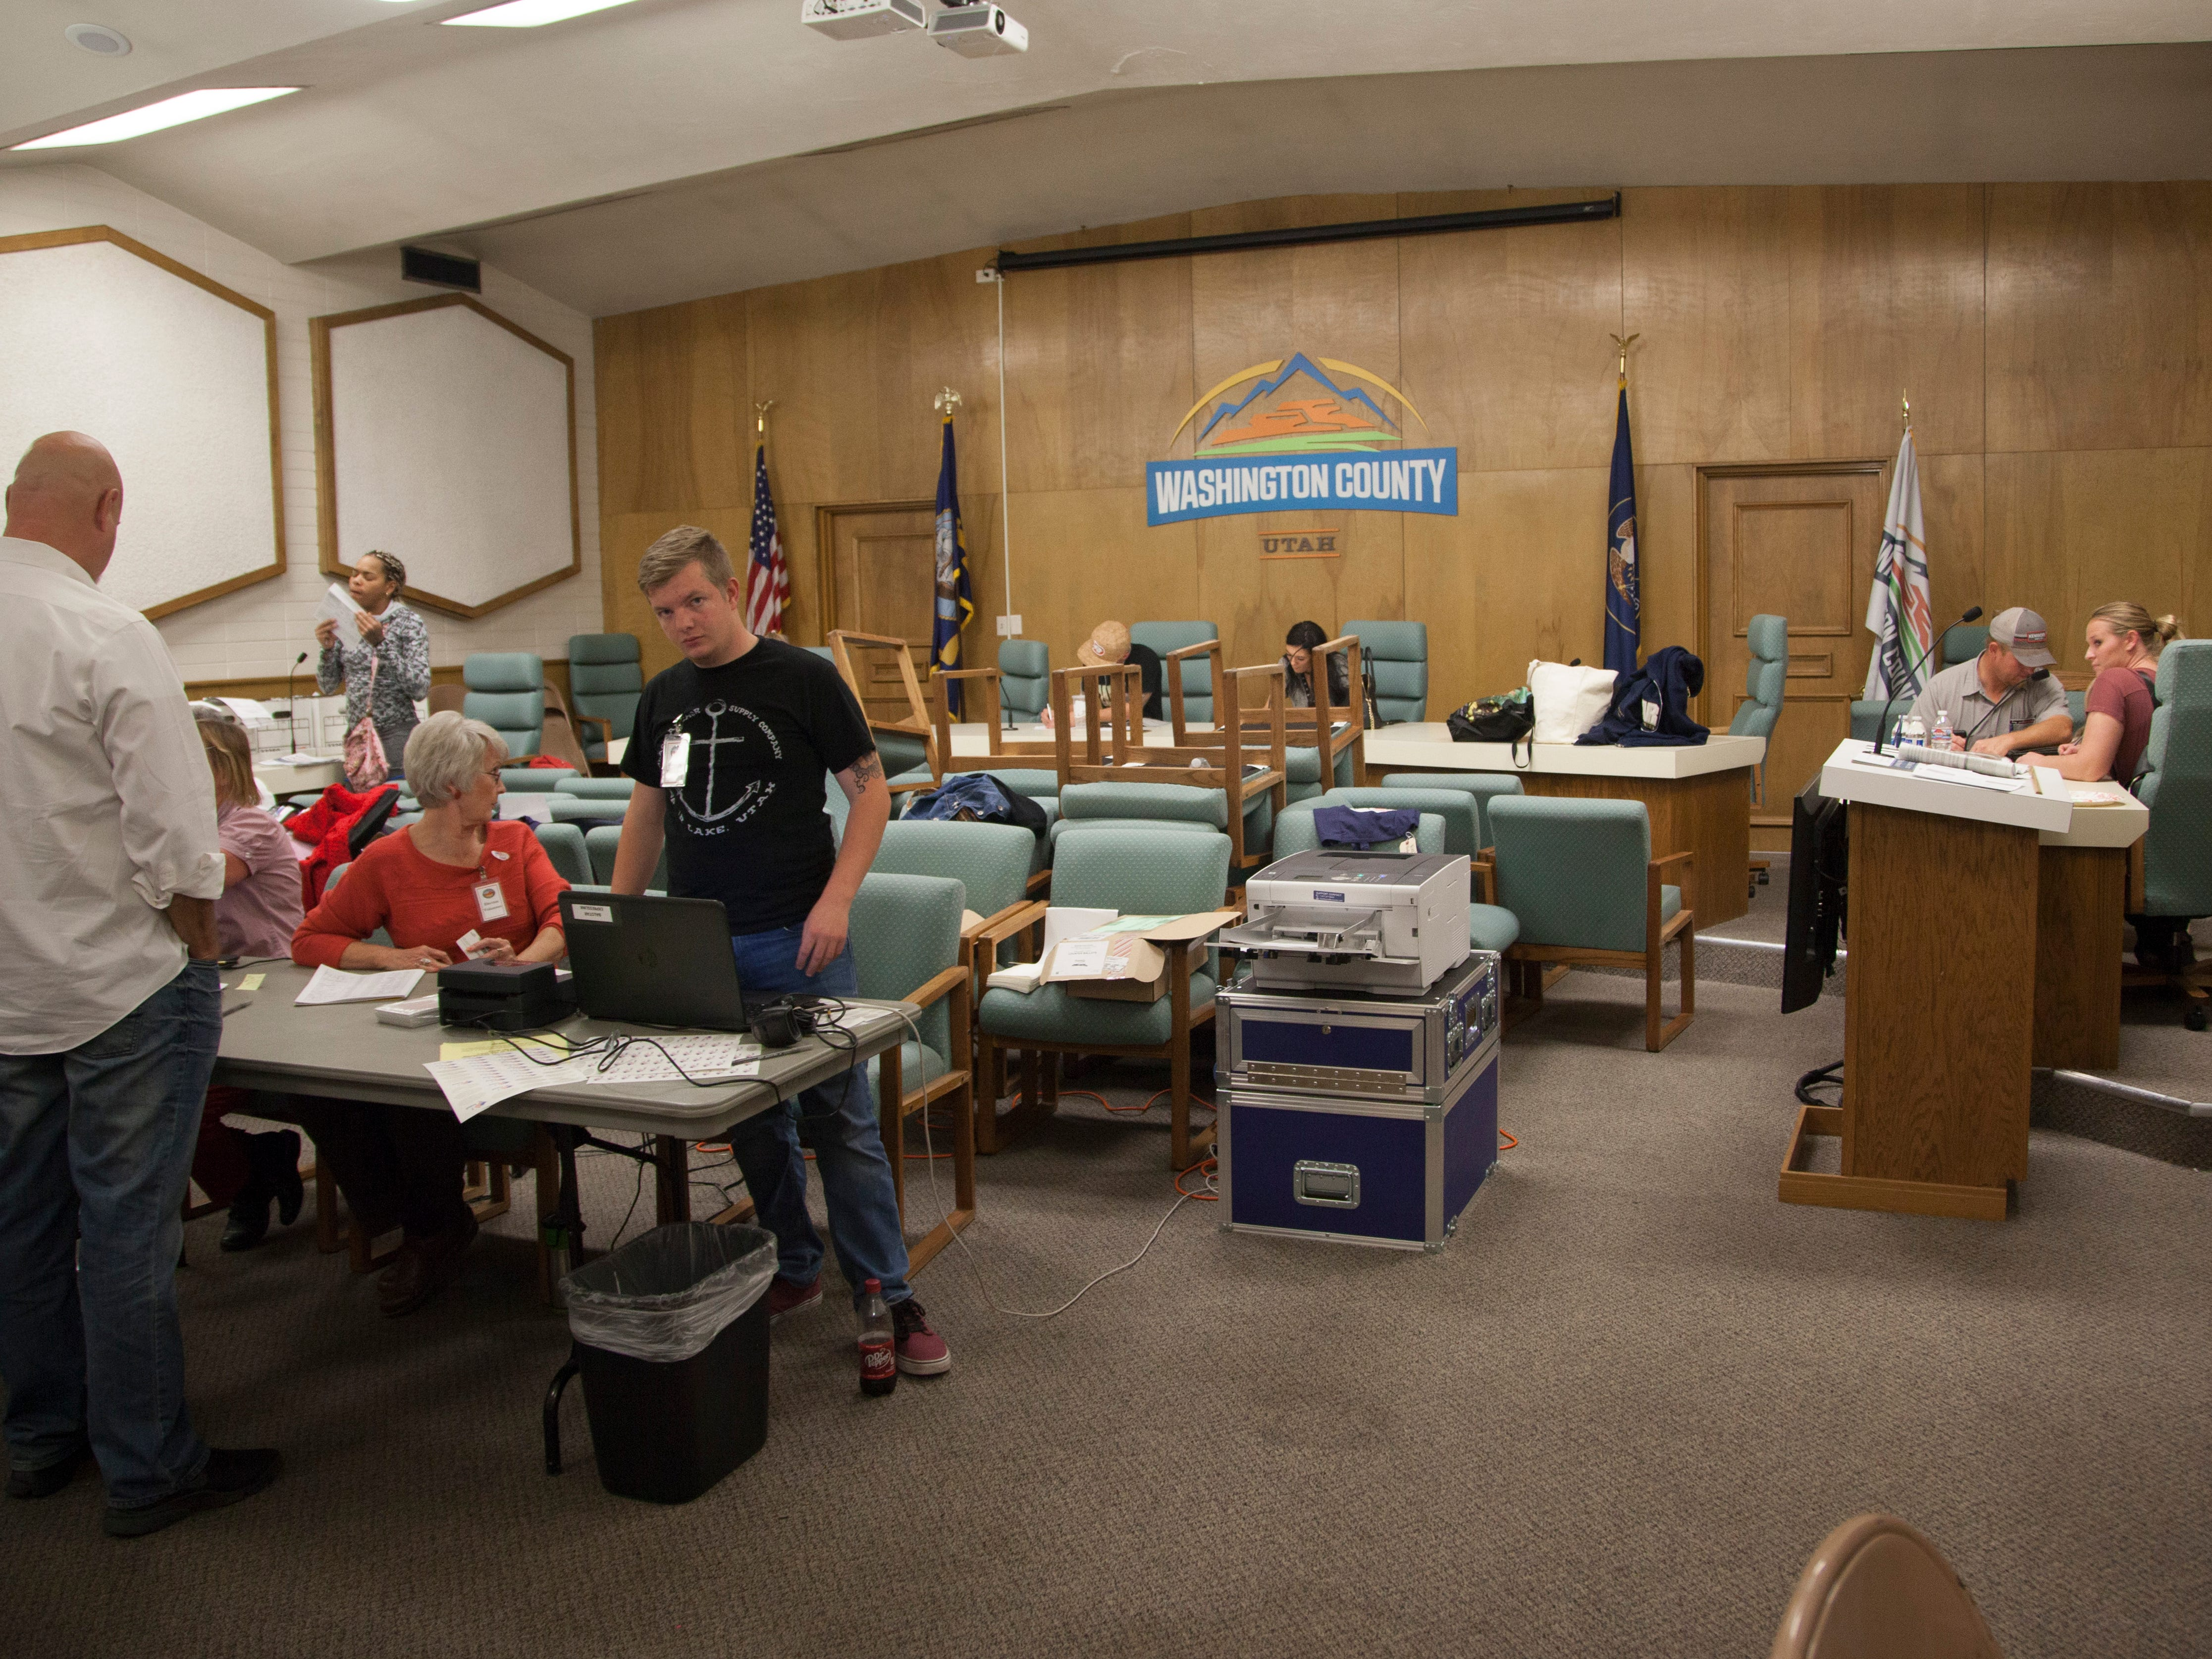 Residents vote at the Washington County Administration Building  in St. George on Election Day, Nov. 6, 2018.